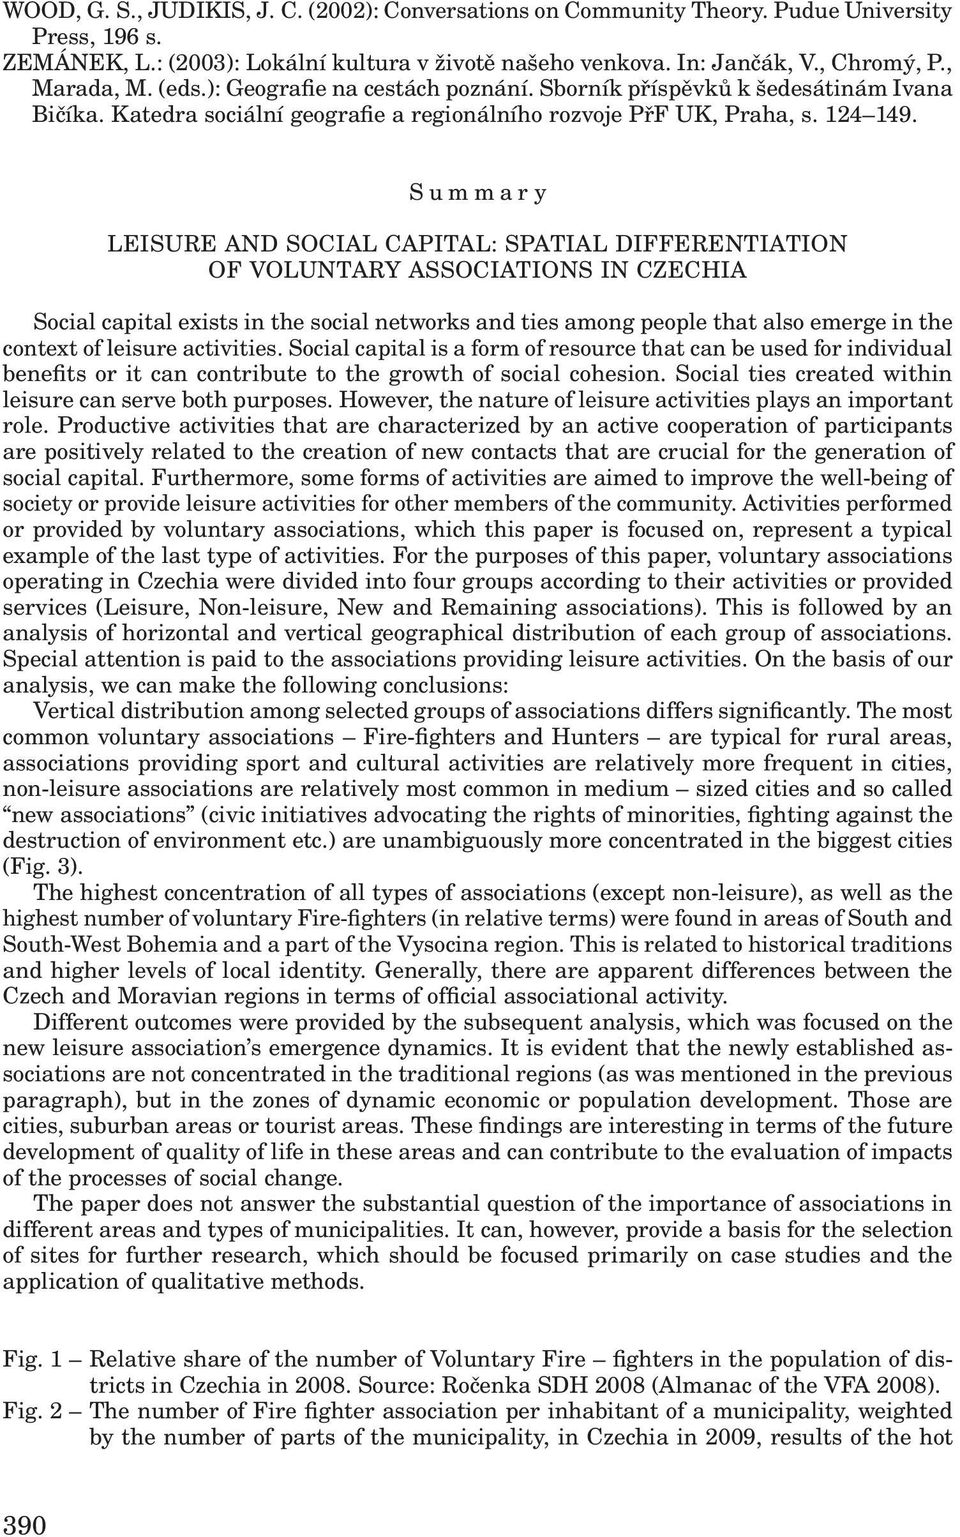 Summary LEISURE AND SOCIAL CAPITAL: SPATIAL DIFFERENTIATION OF VOLUNTARY ASSOCIATIONS IN CZECHIA Social capital exists in the social networks and ties among people that also emerge in the context of